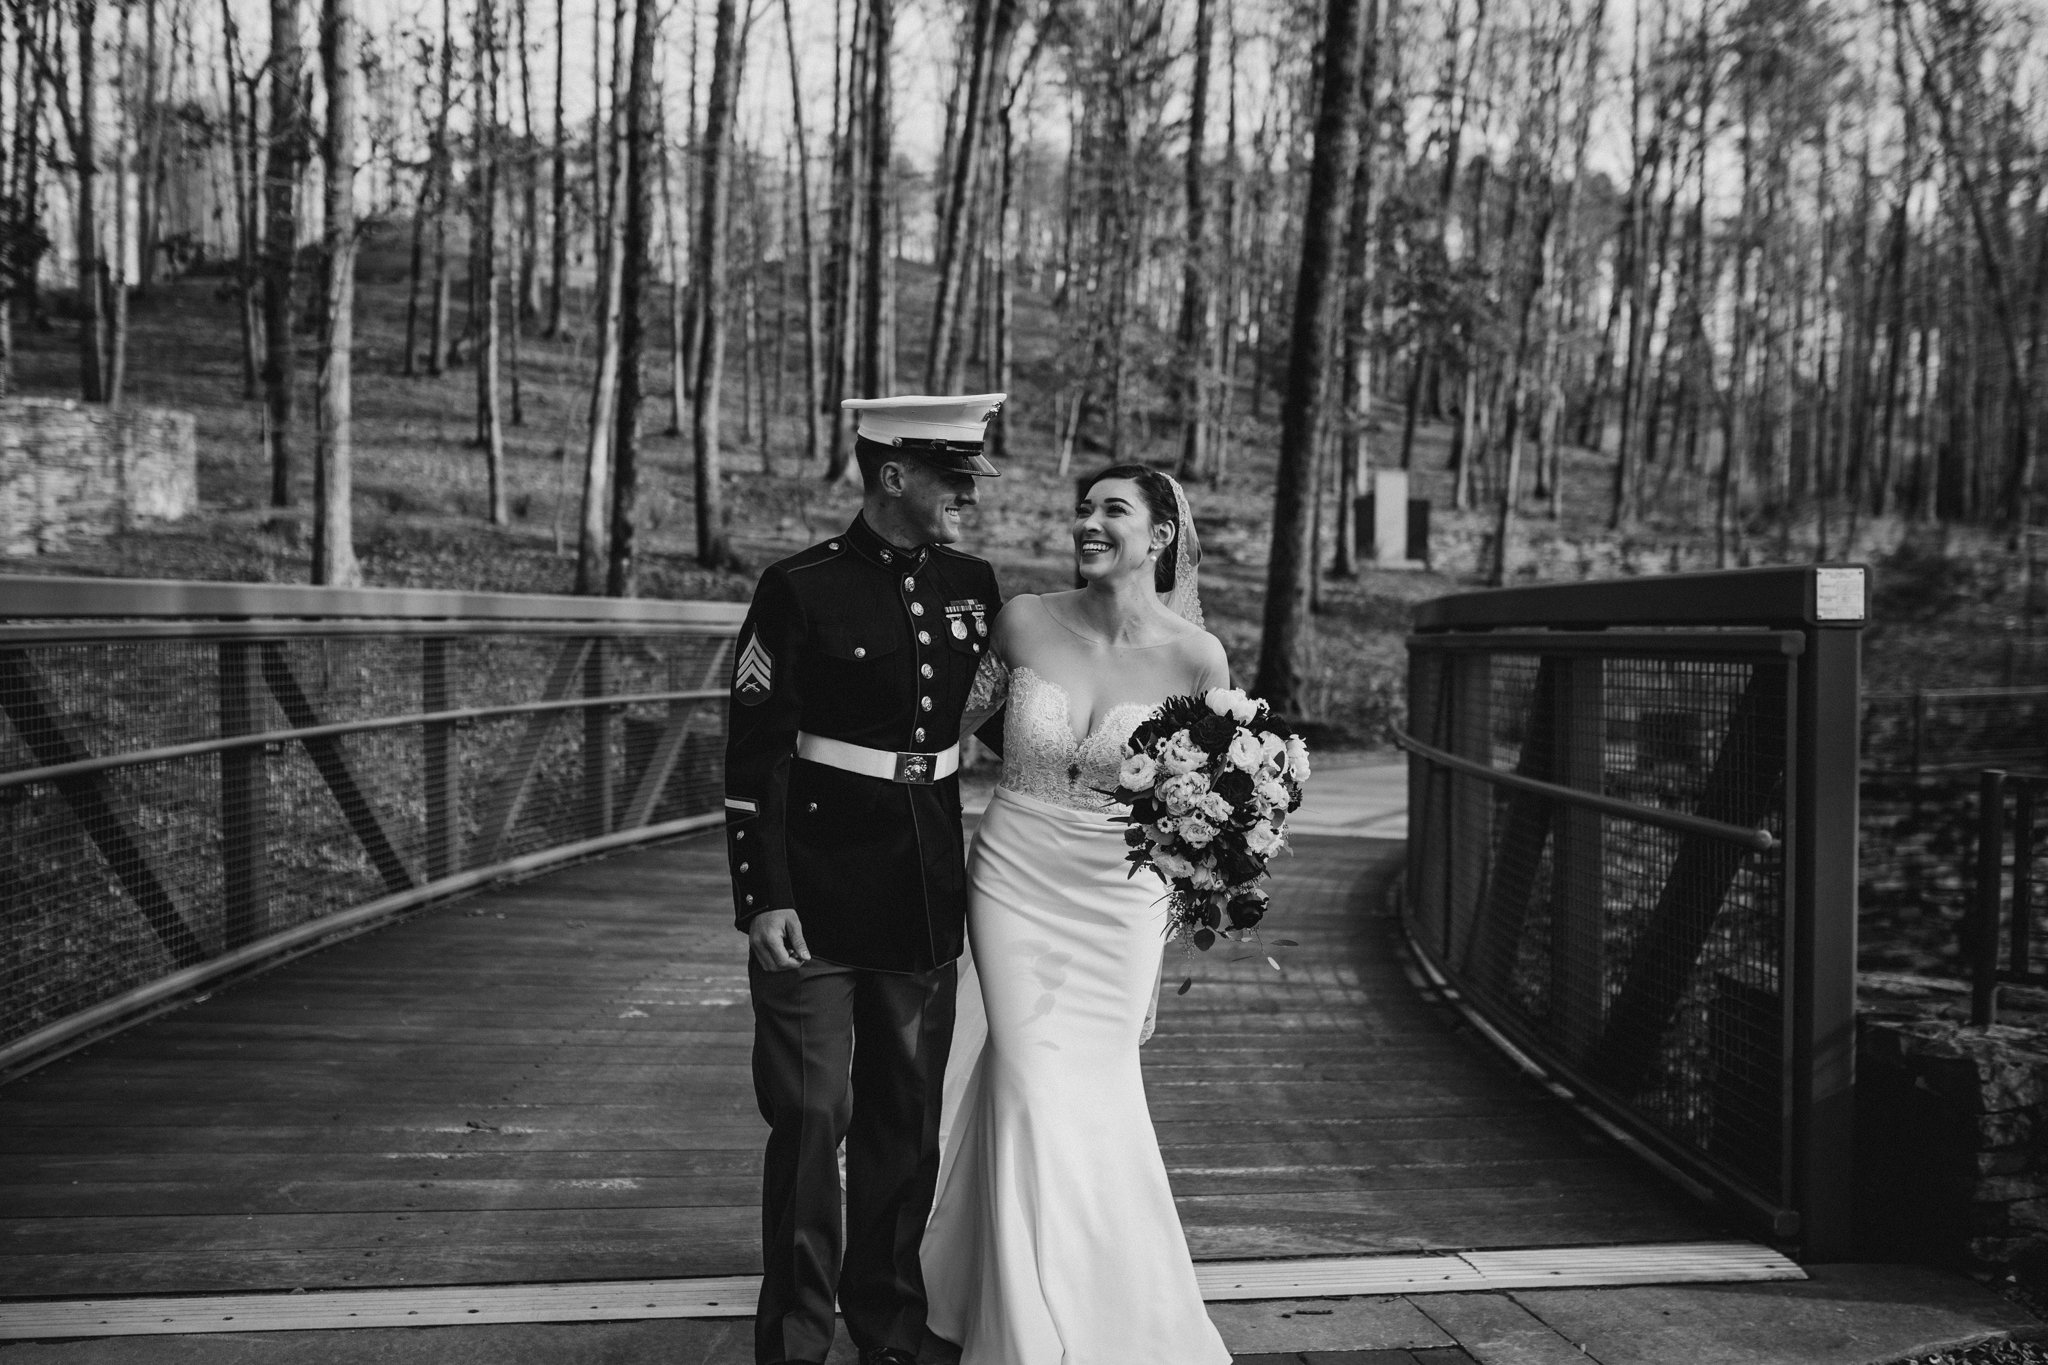 solinsky_wedding_national_museum_of_marine_corp-18.jpg